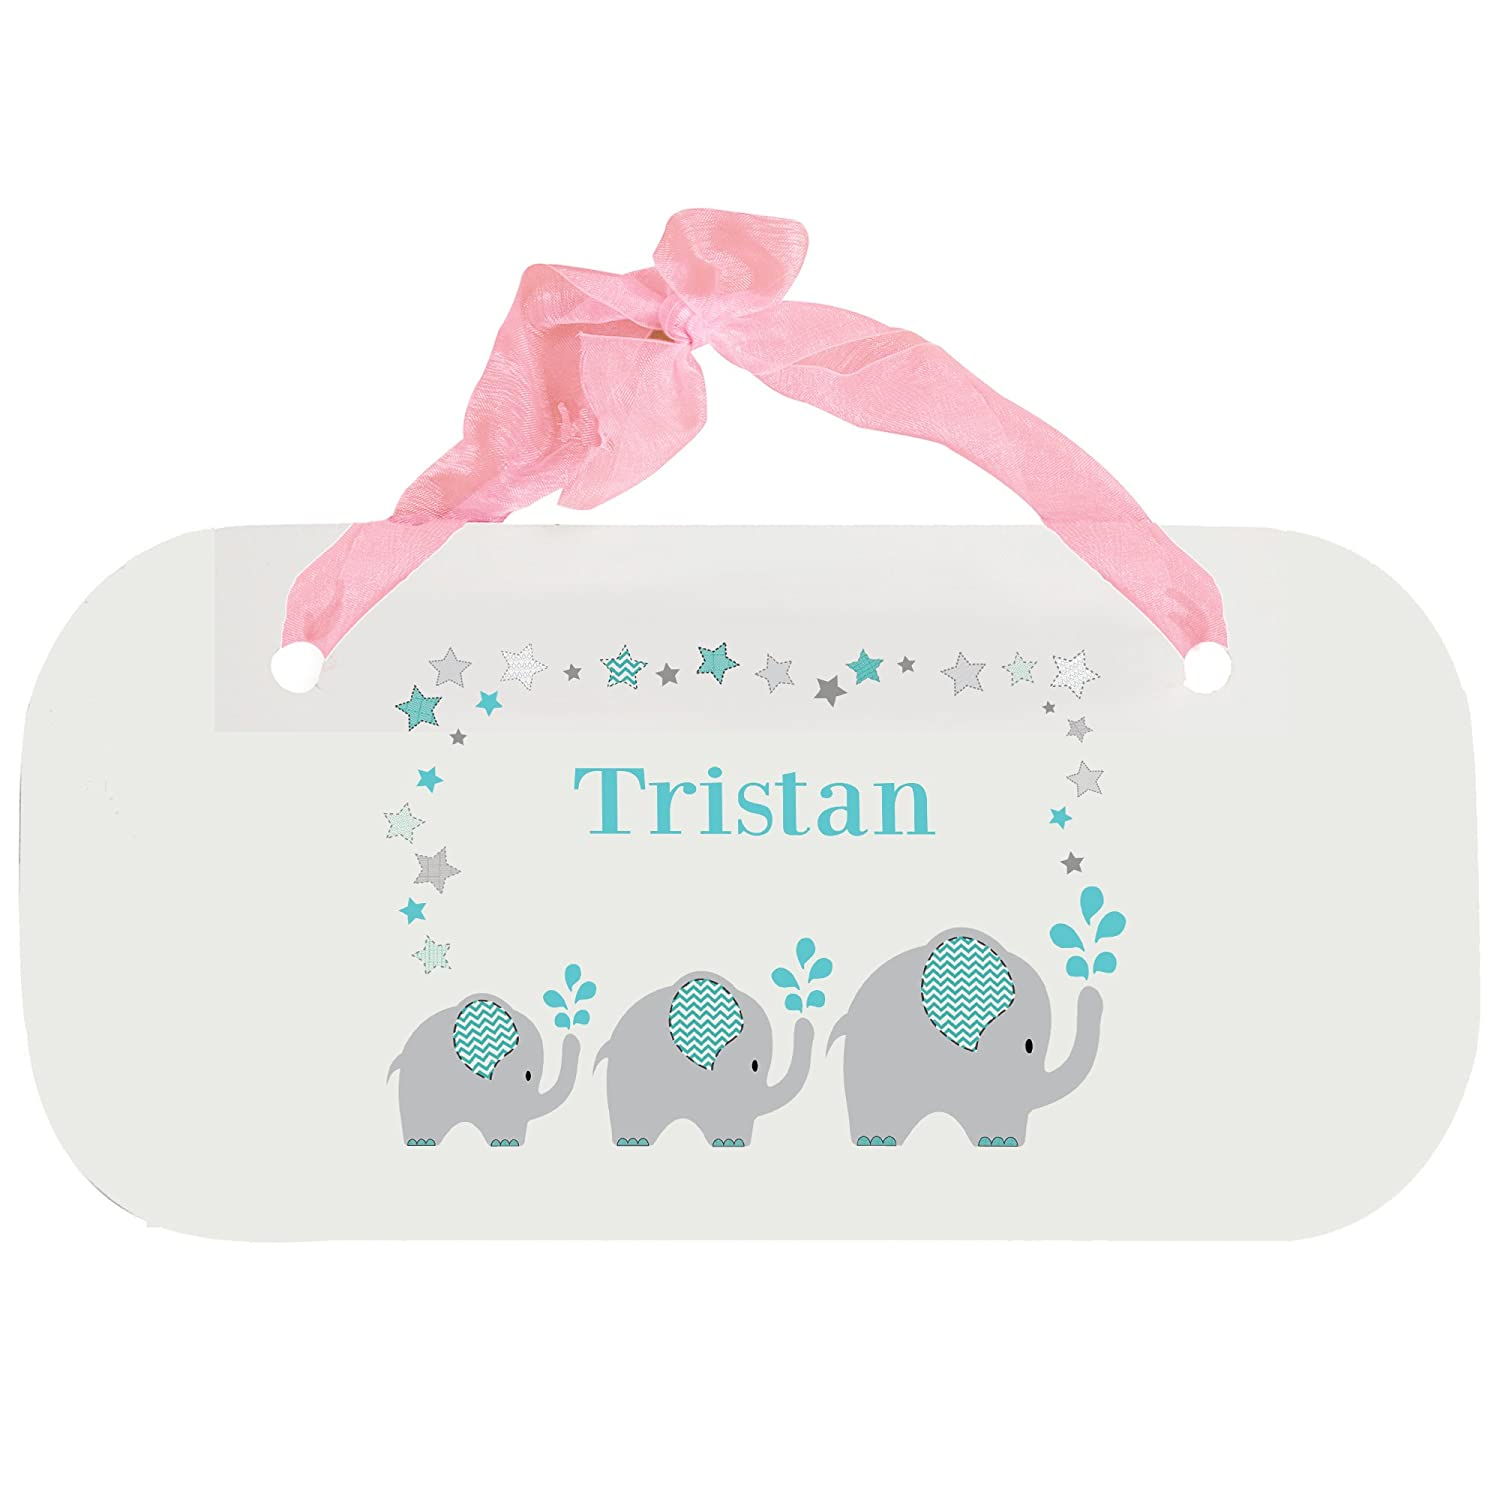 Personalized Grey and Teal Elephant Nursery Door Hanger Plaque with pink ribbon MyBambino